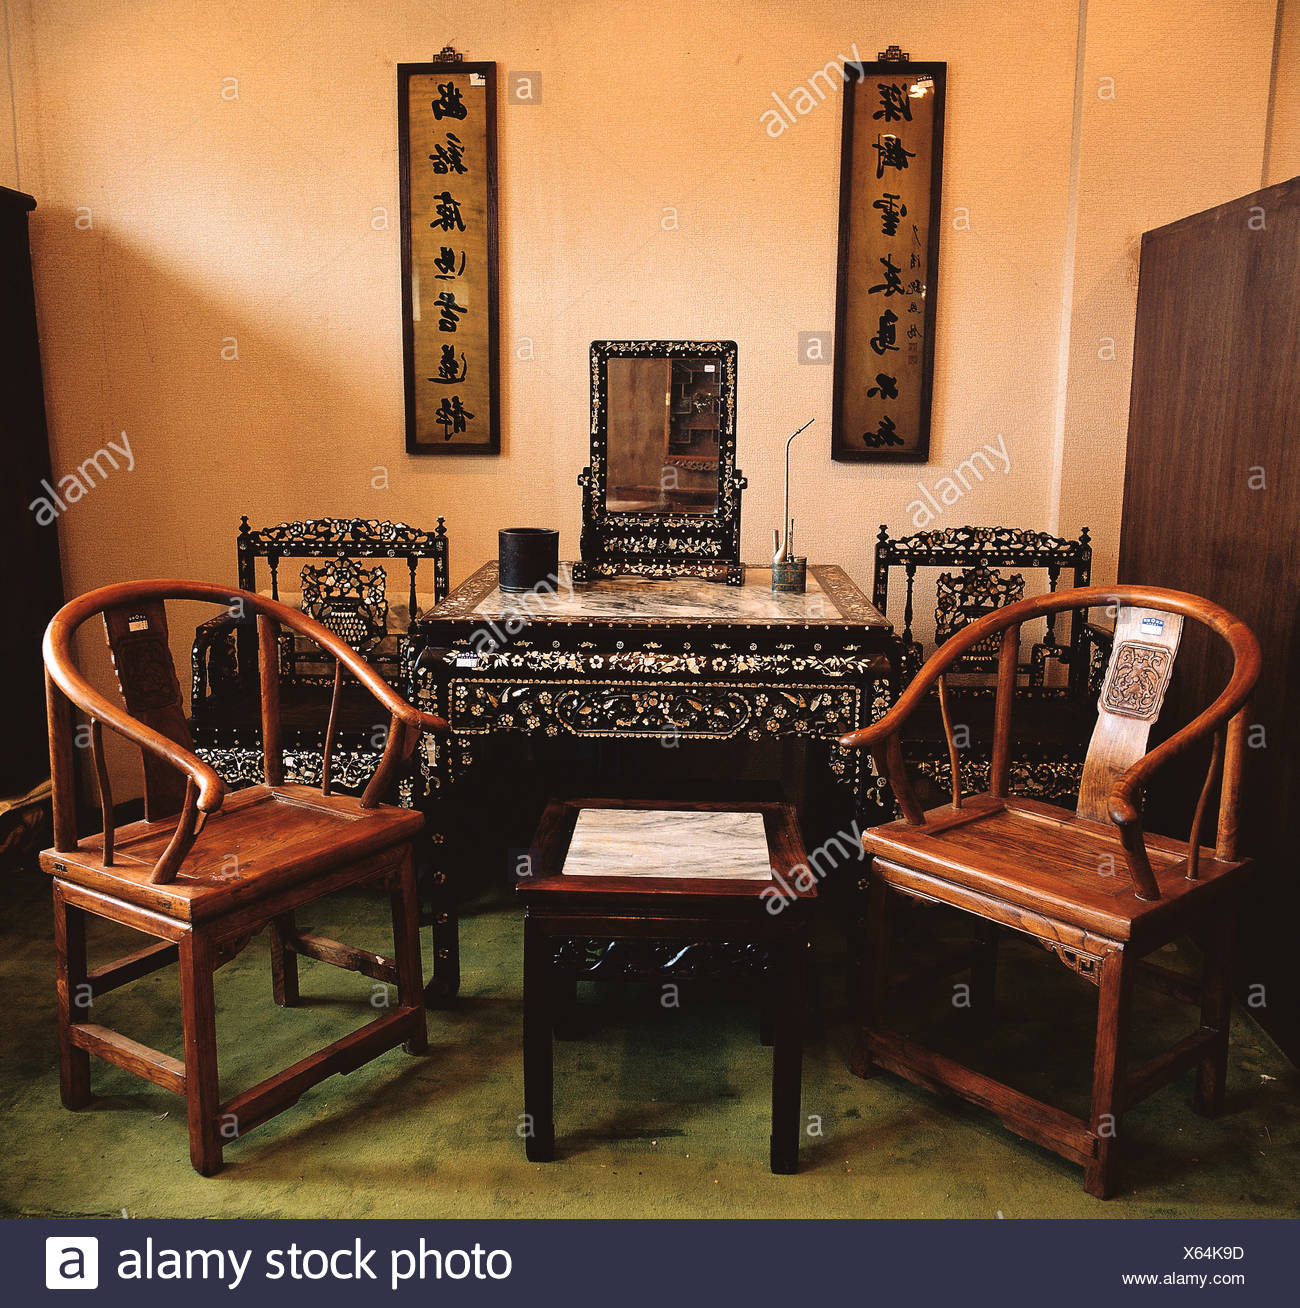 Traditional Study Room: Chinese Traditional Study Room Stock Photo: 279156793